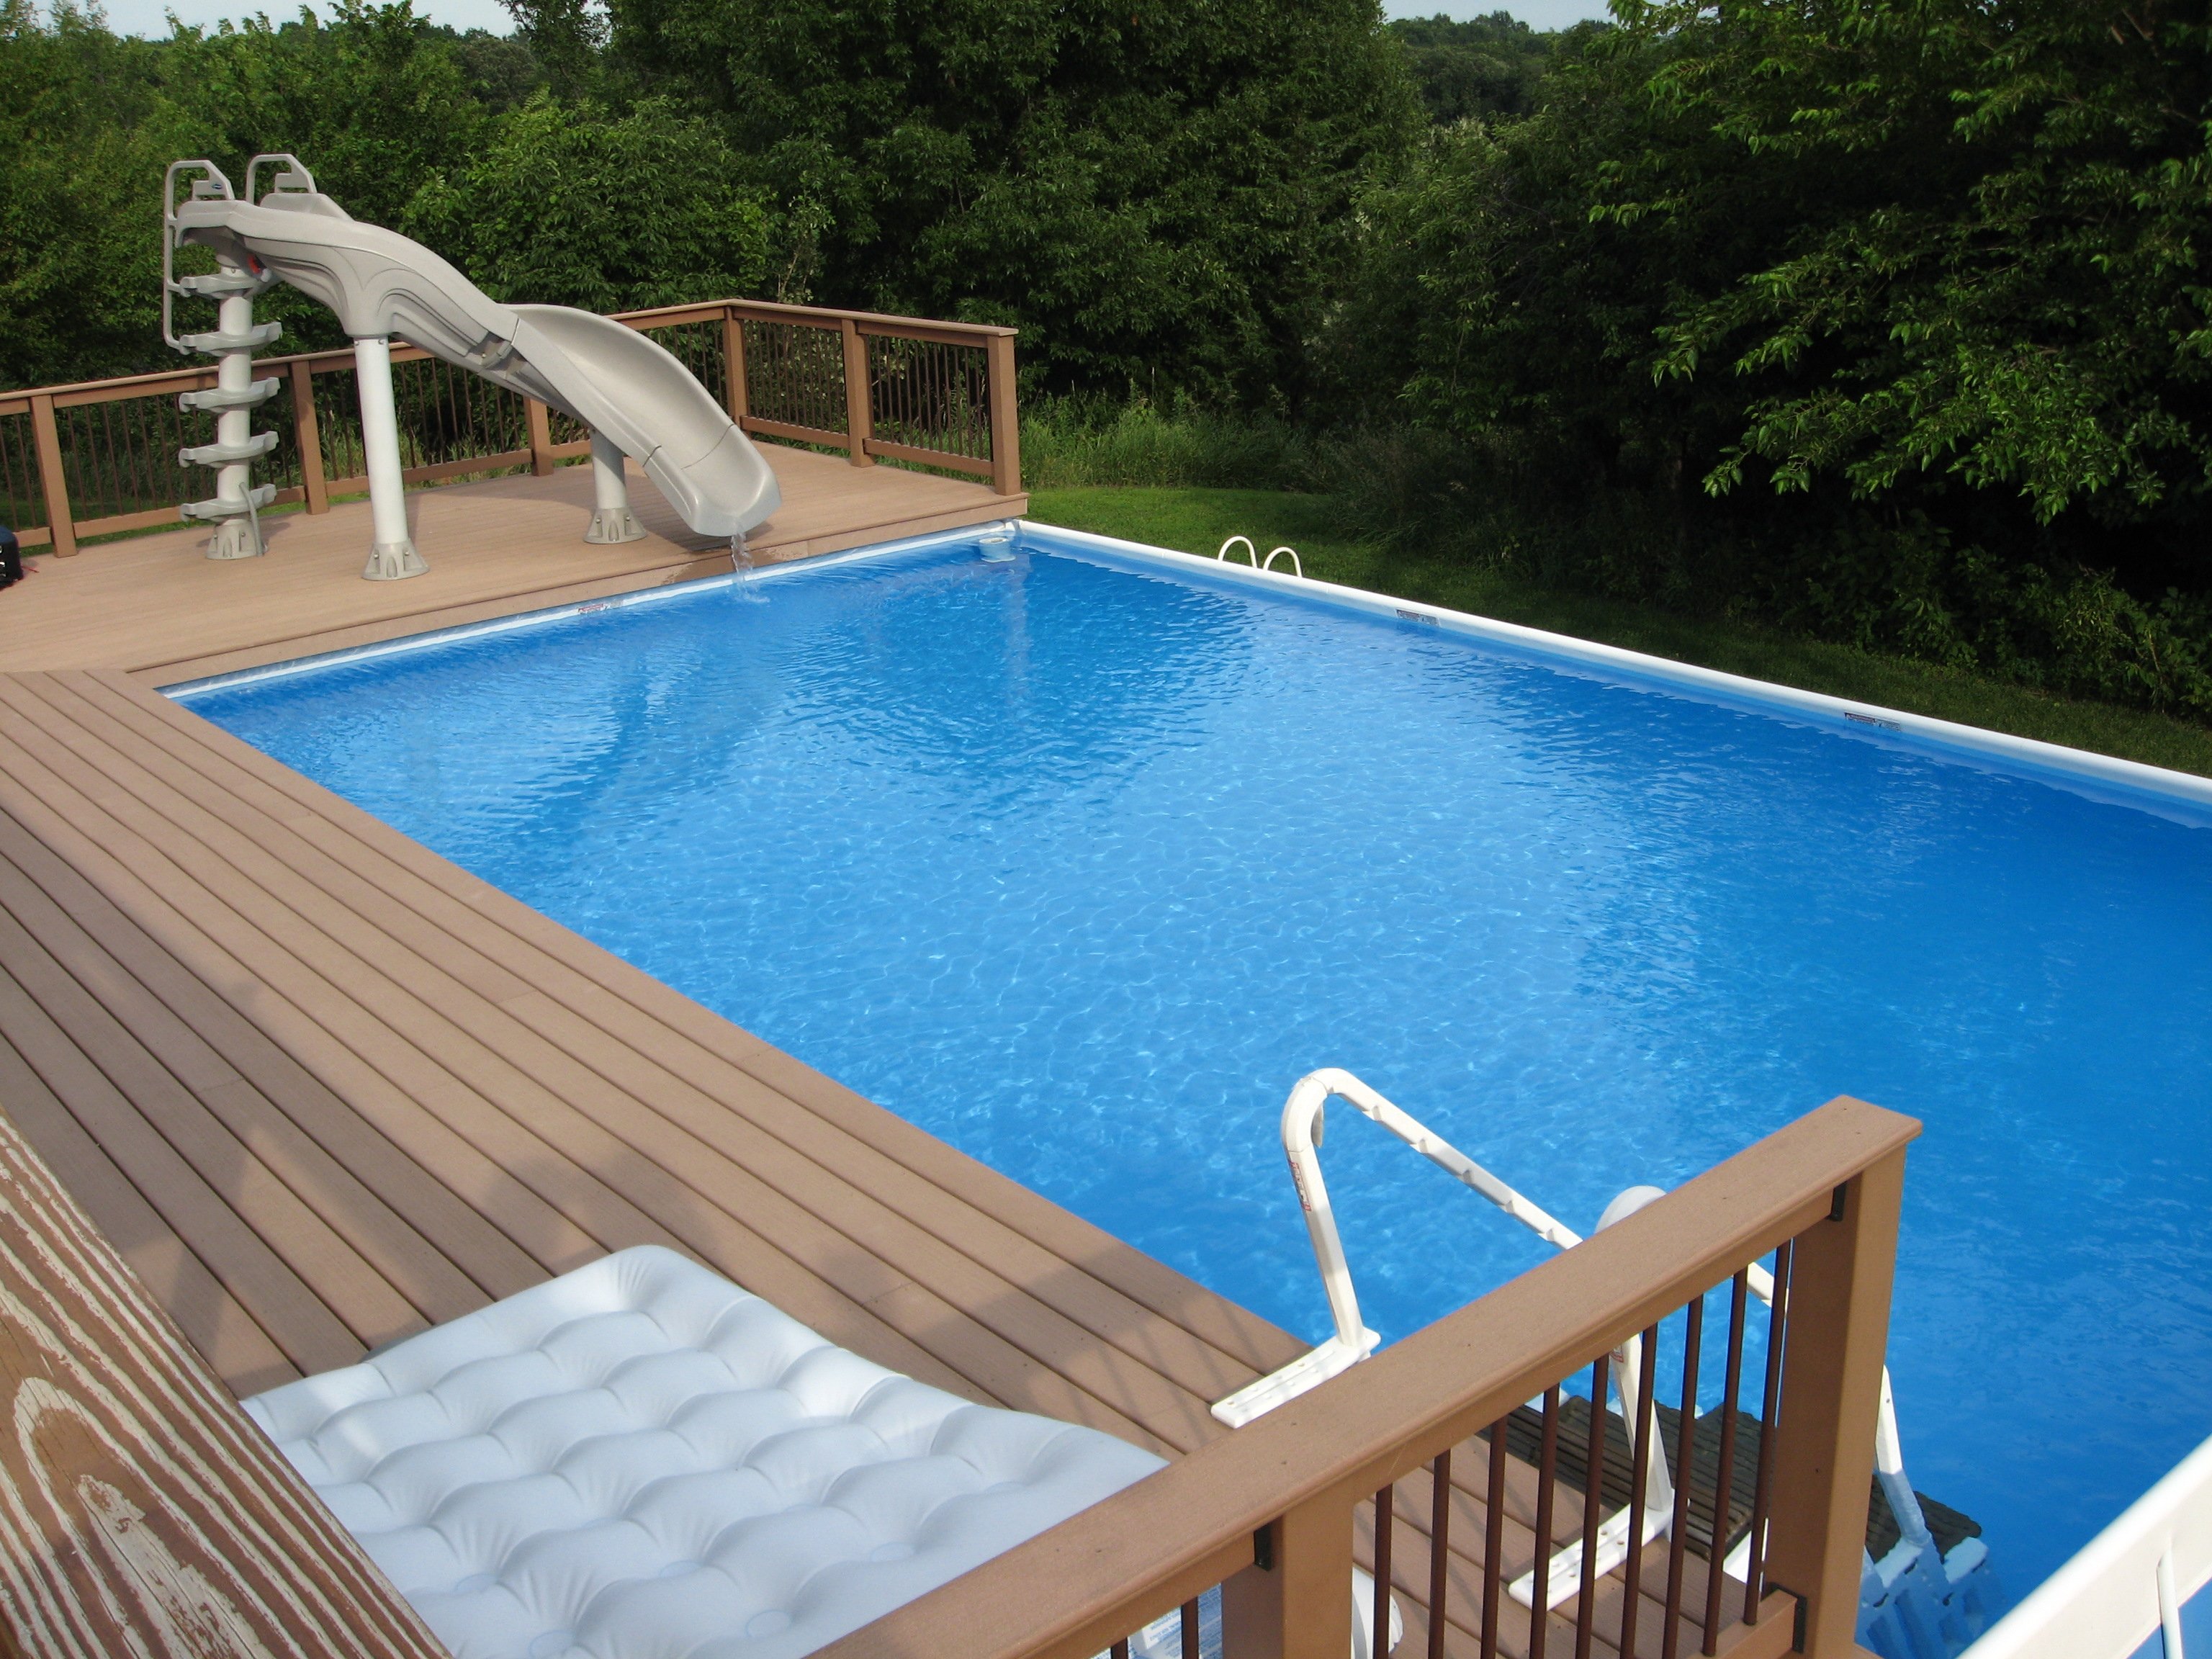 Above ground pool custom decks - Swimming pool decks above ground designs ...